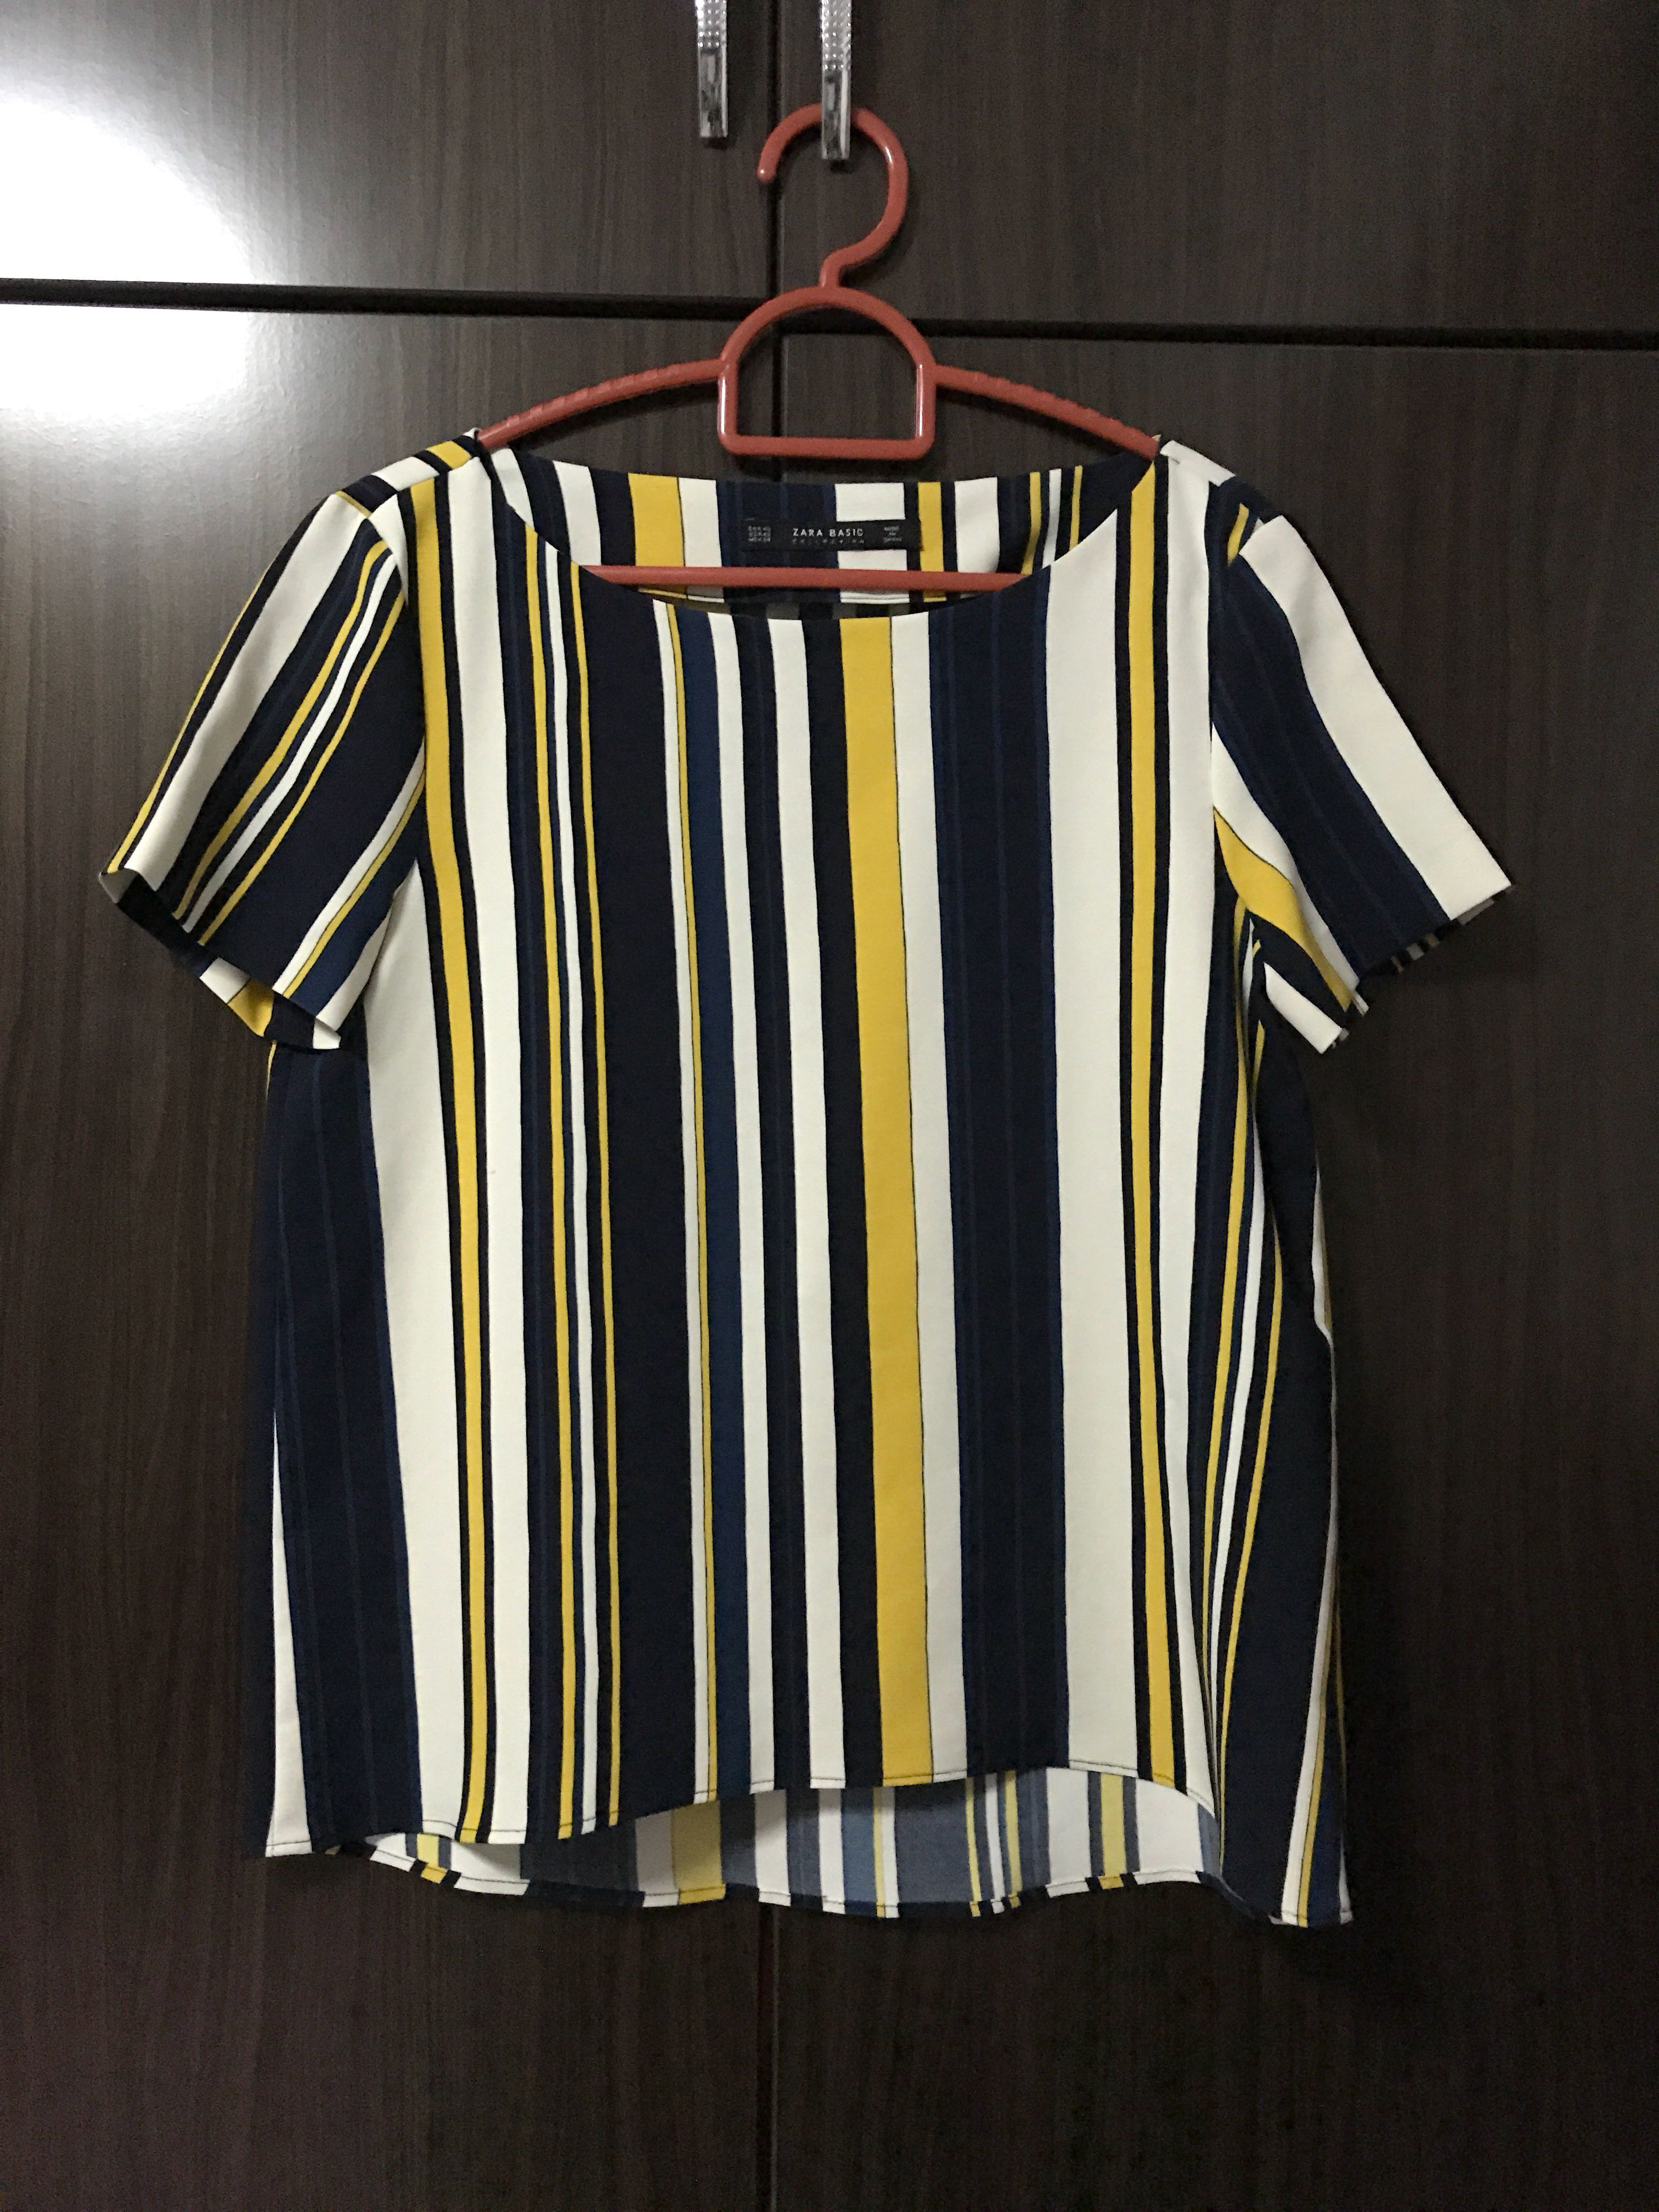 2cb5180afce Zara striped boat neck top XS, Women's Fashion, Clothes, Tops on ...